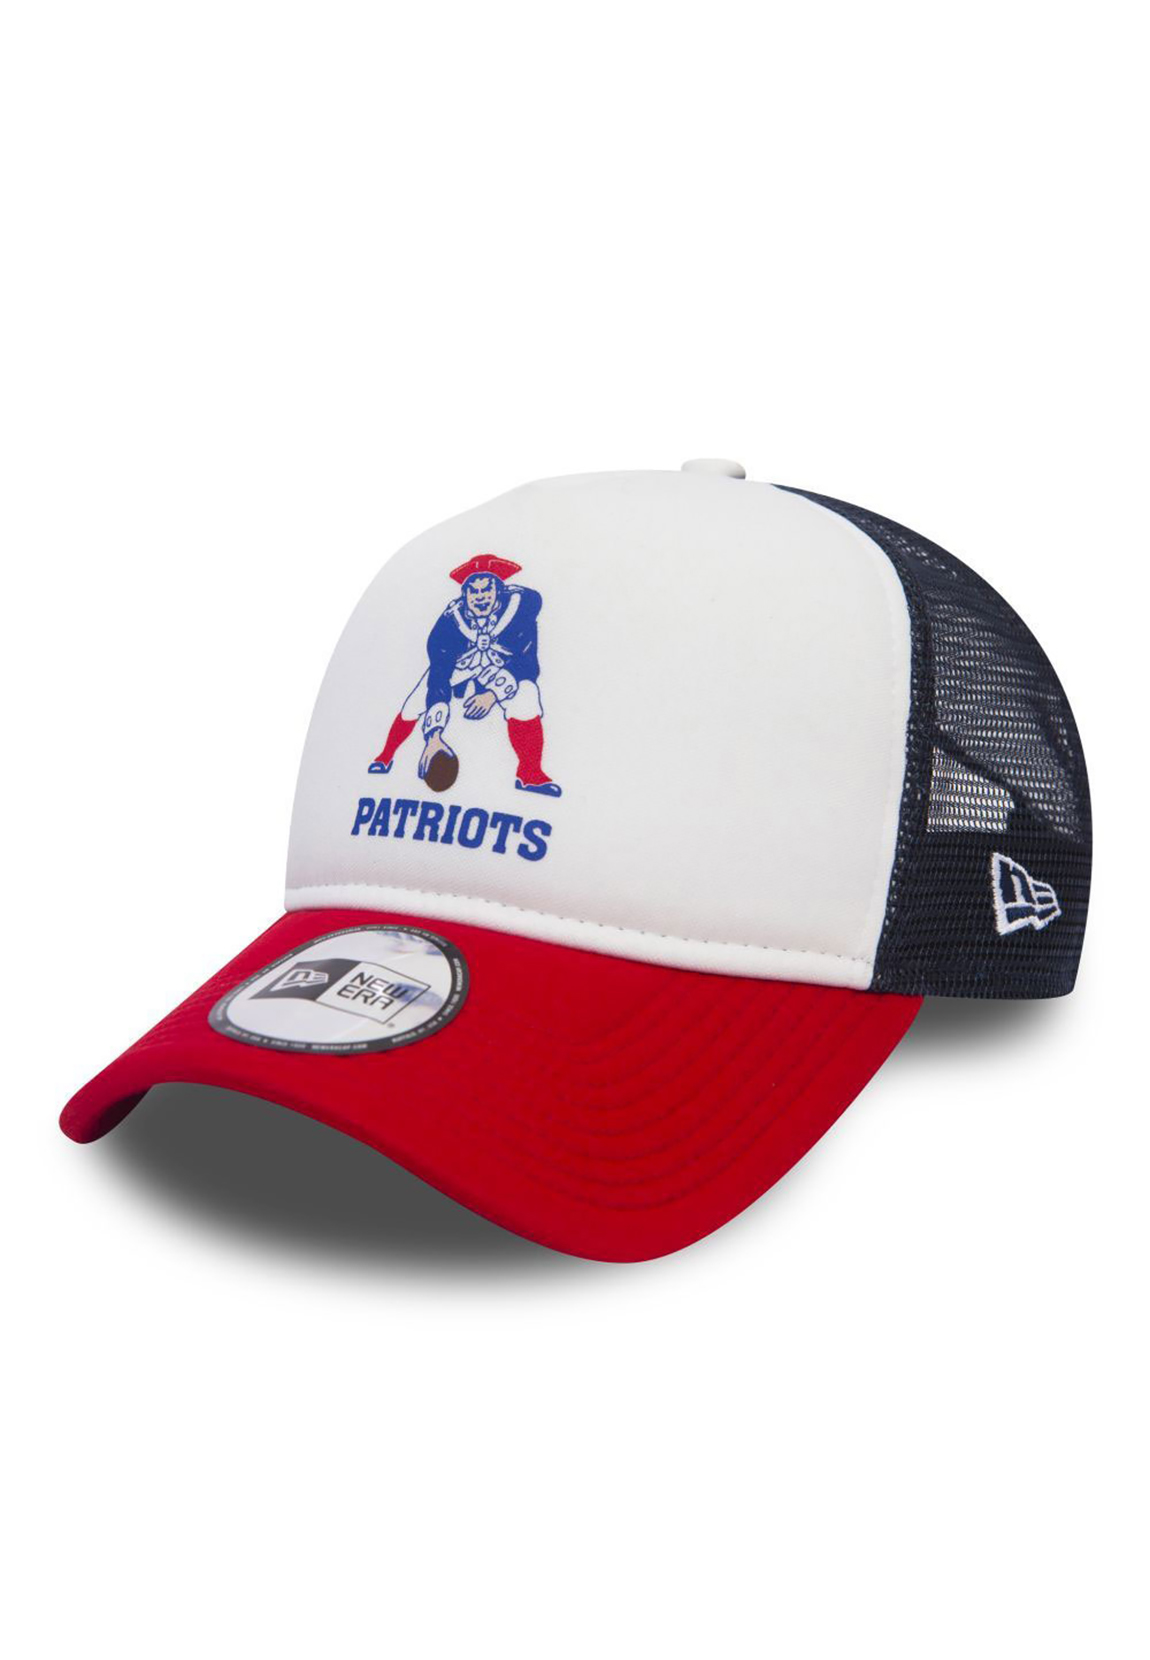 New Era NFL Throwback Truck Adjustable NEW ENGL...